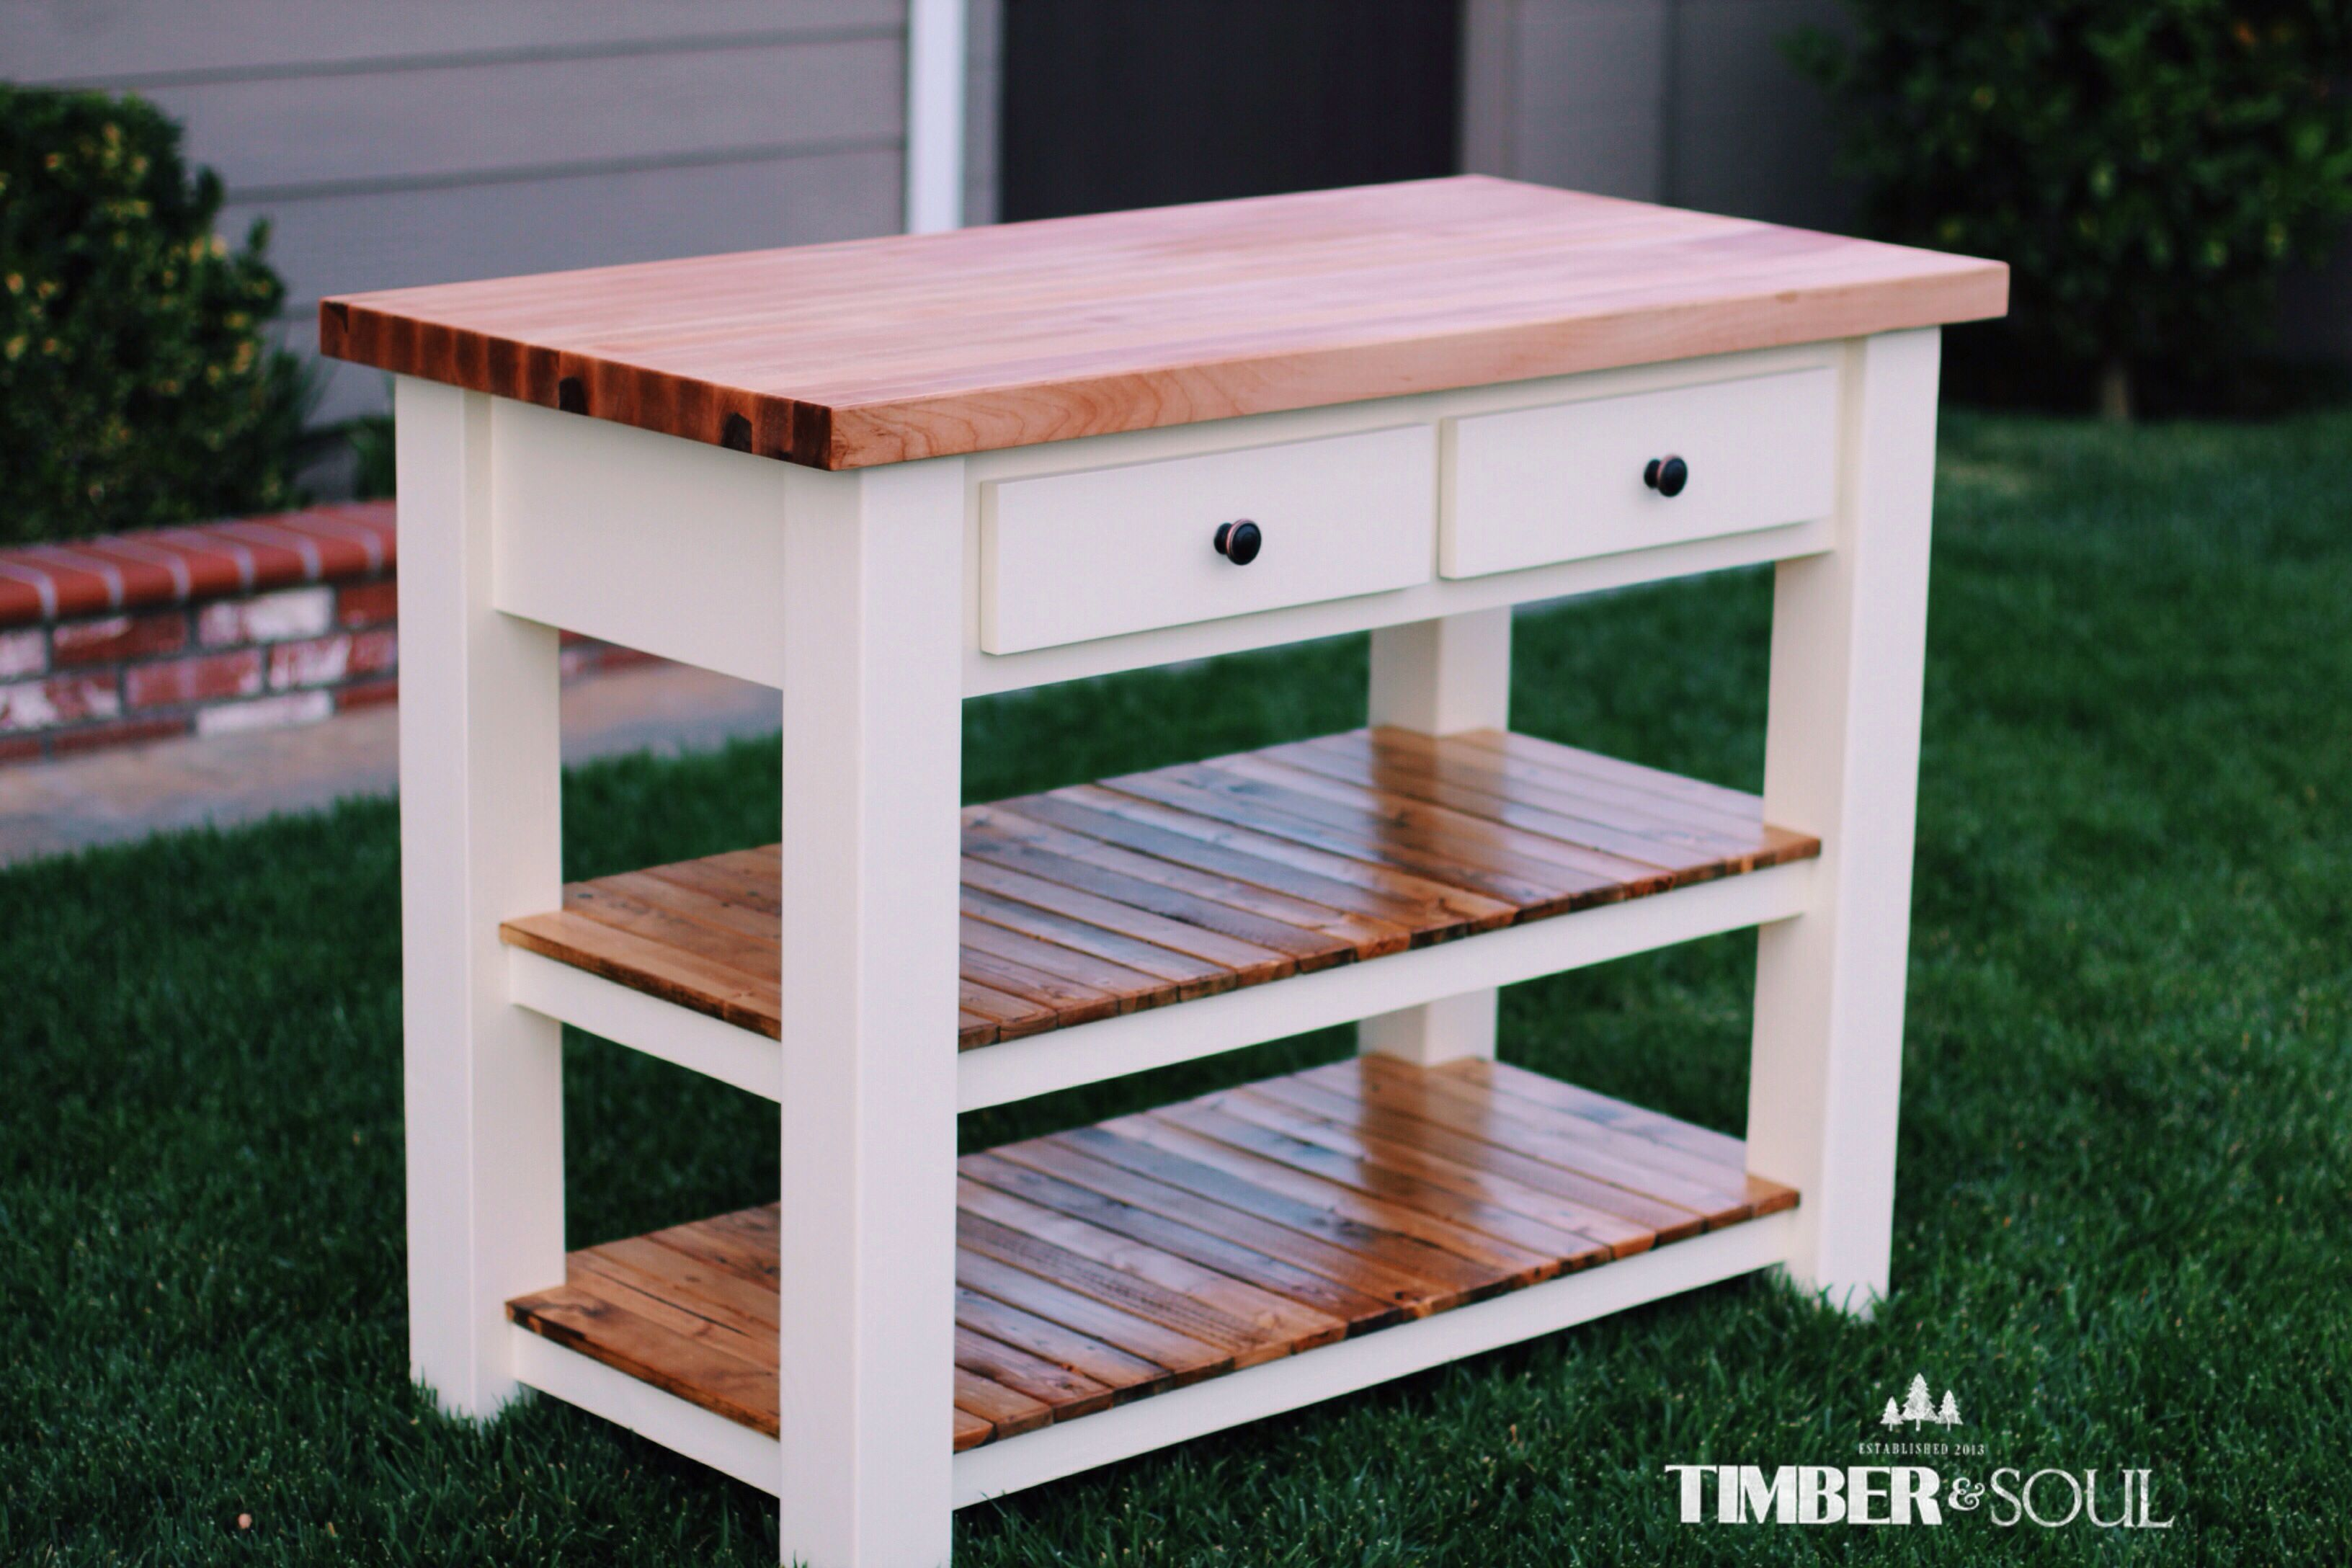 Butcher block kitchen island do it yourself home projects from ana butcher block kitchen island do it yourself home projects from ana white solutioingenieria Images